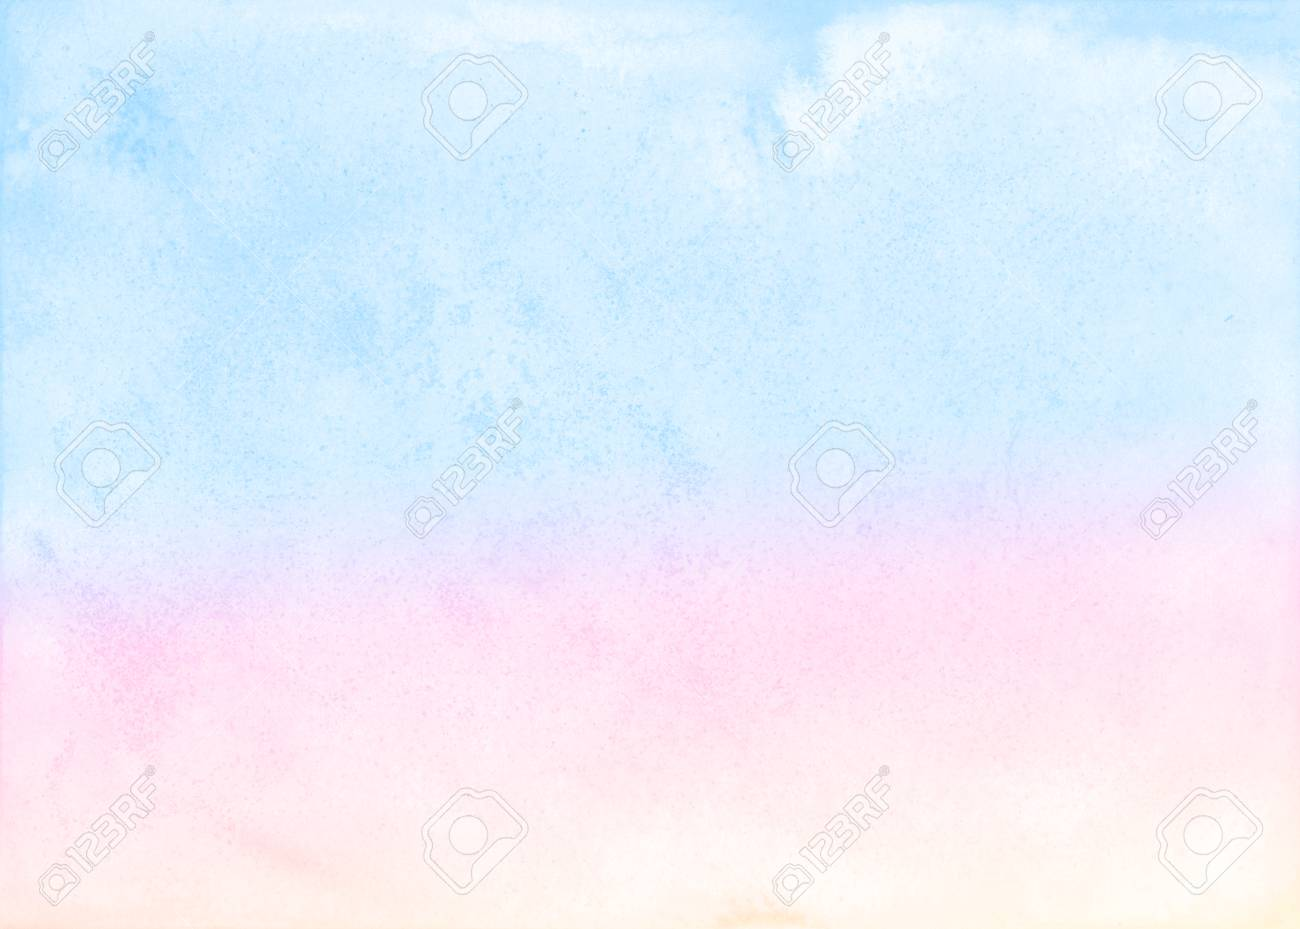 Abstract Pastel Watercolor Background Stock Photo Picture And Royalty Free Image Image 96000717